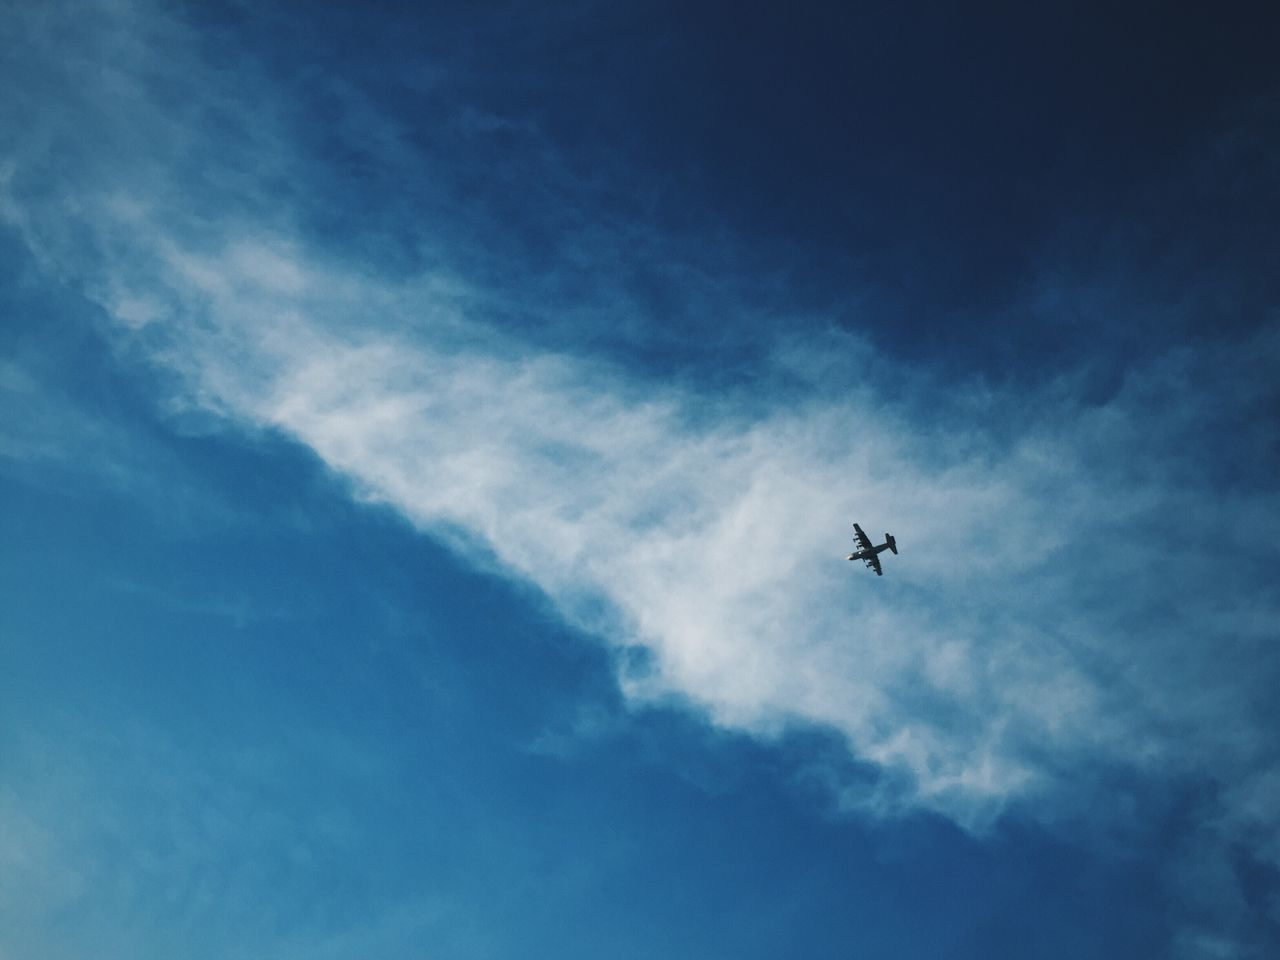 Air Vehicle Airplane Cloud - Sky Day Flying Low Angle View Nature No People Outdoors Sky Transportation